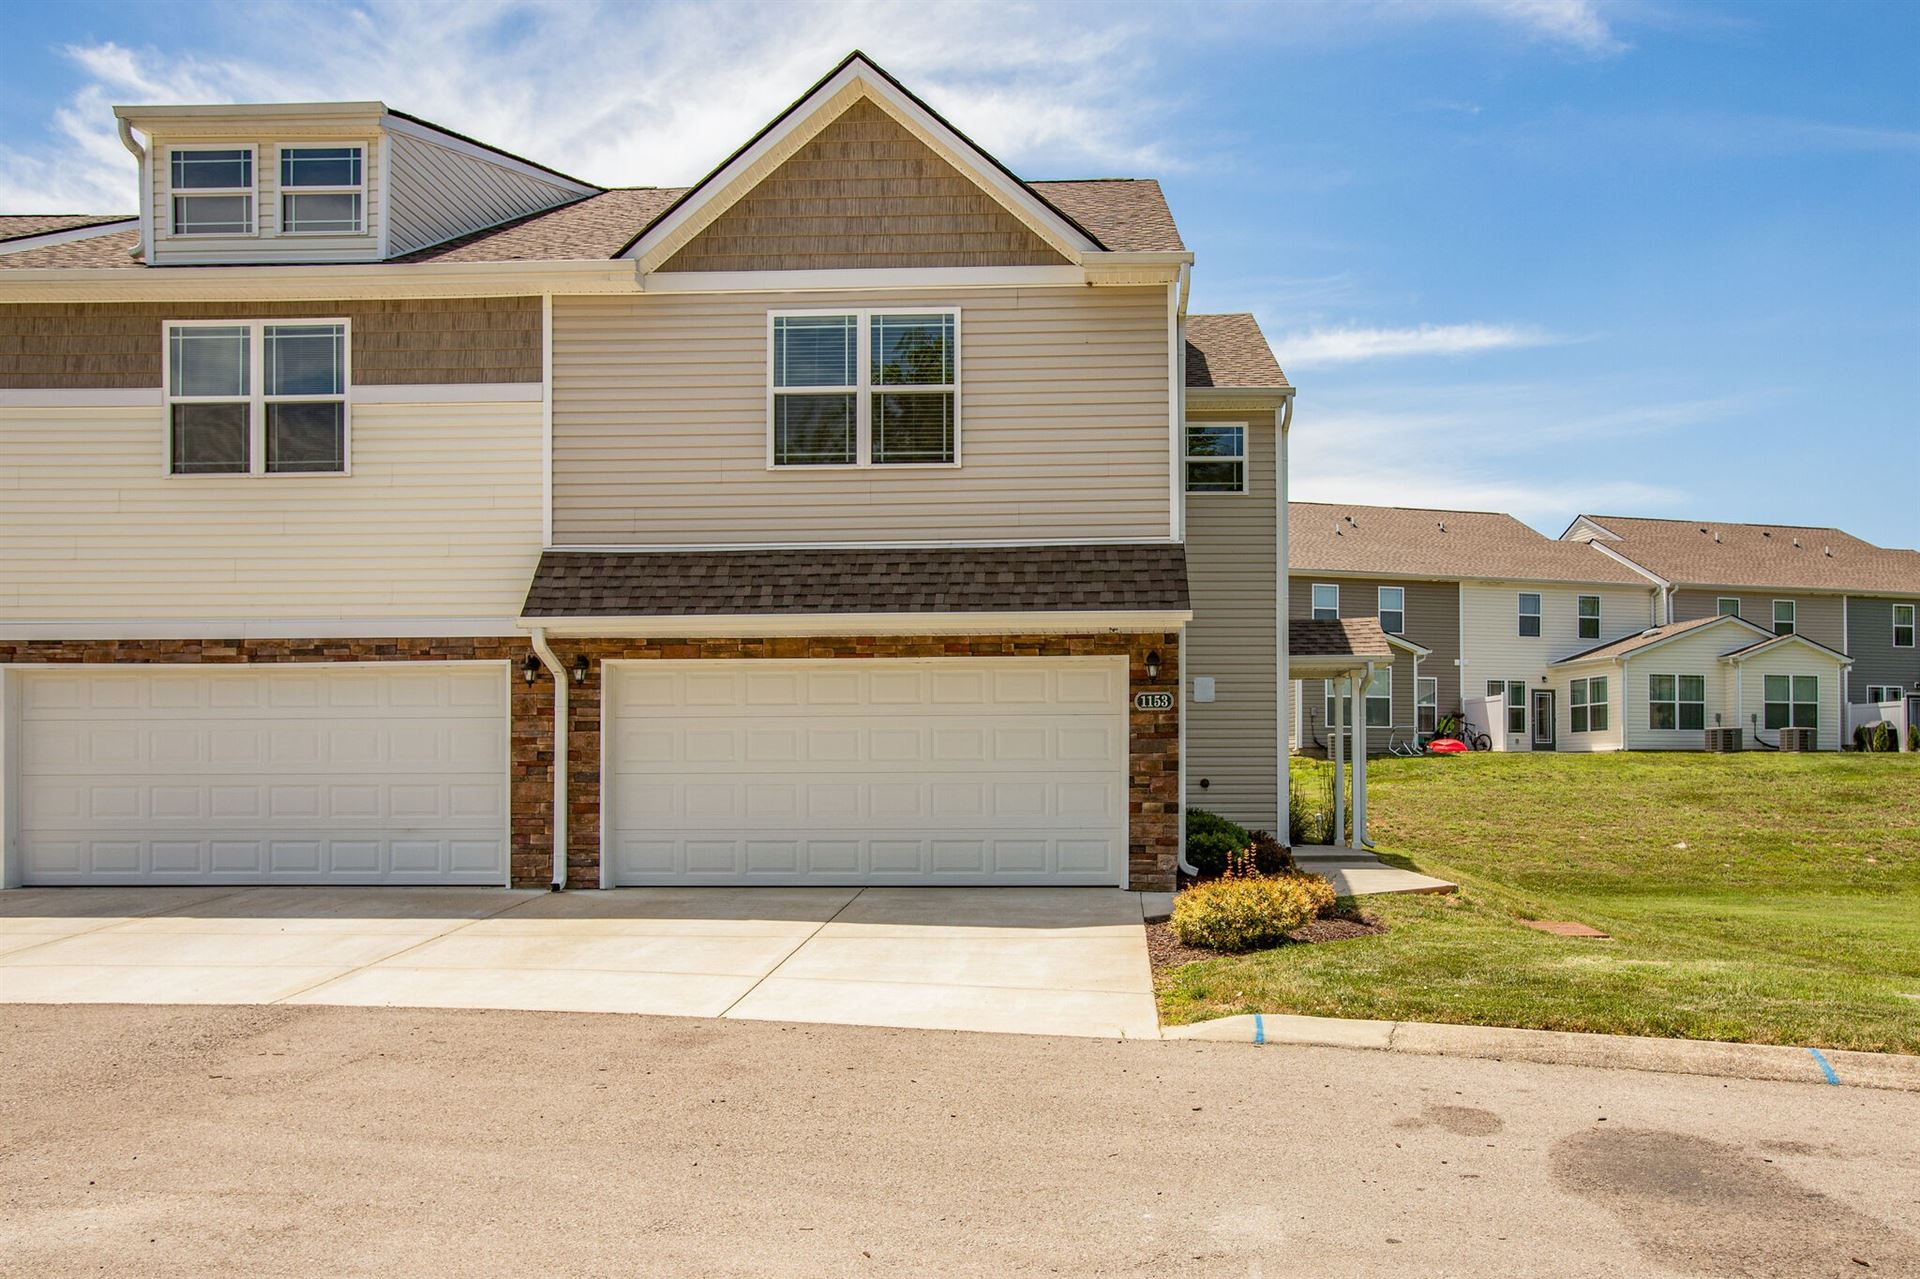 Photo of 1153 Somerset Springs Dr, Spring Hill, TN 37174 (MLS # 2264217)